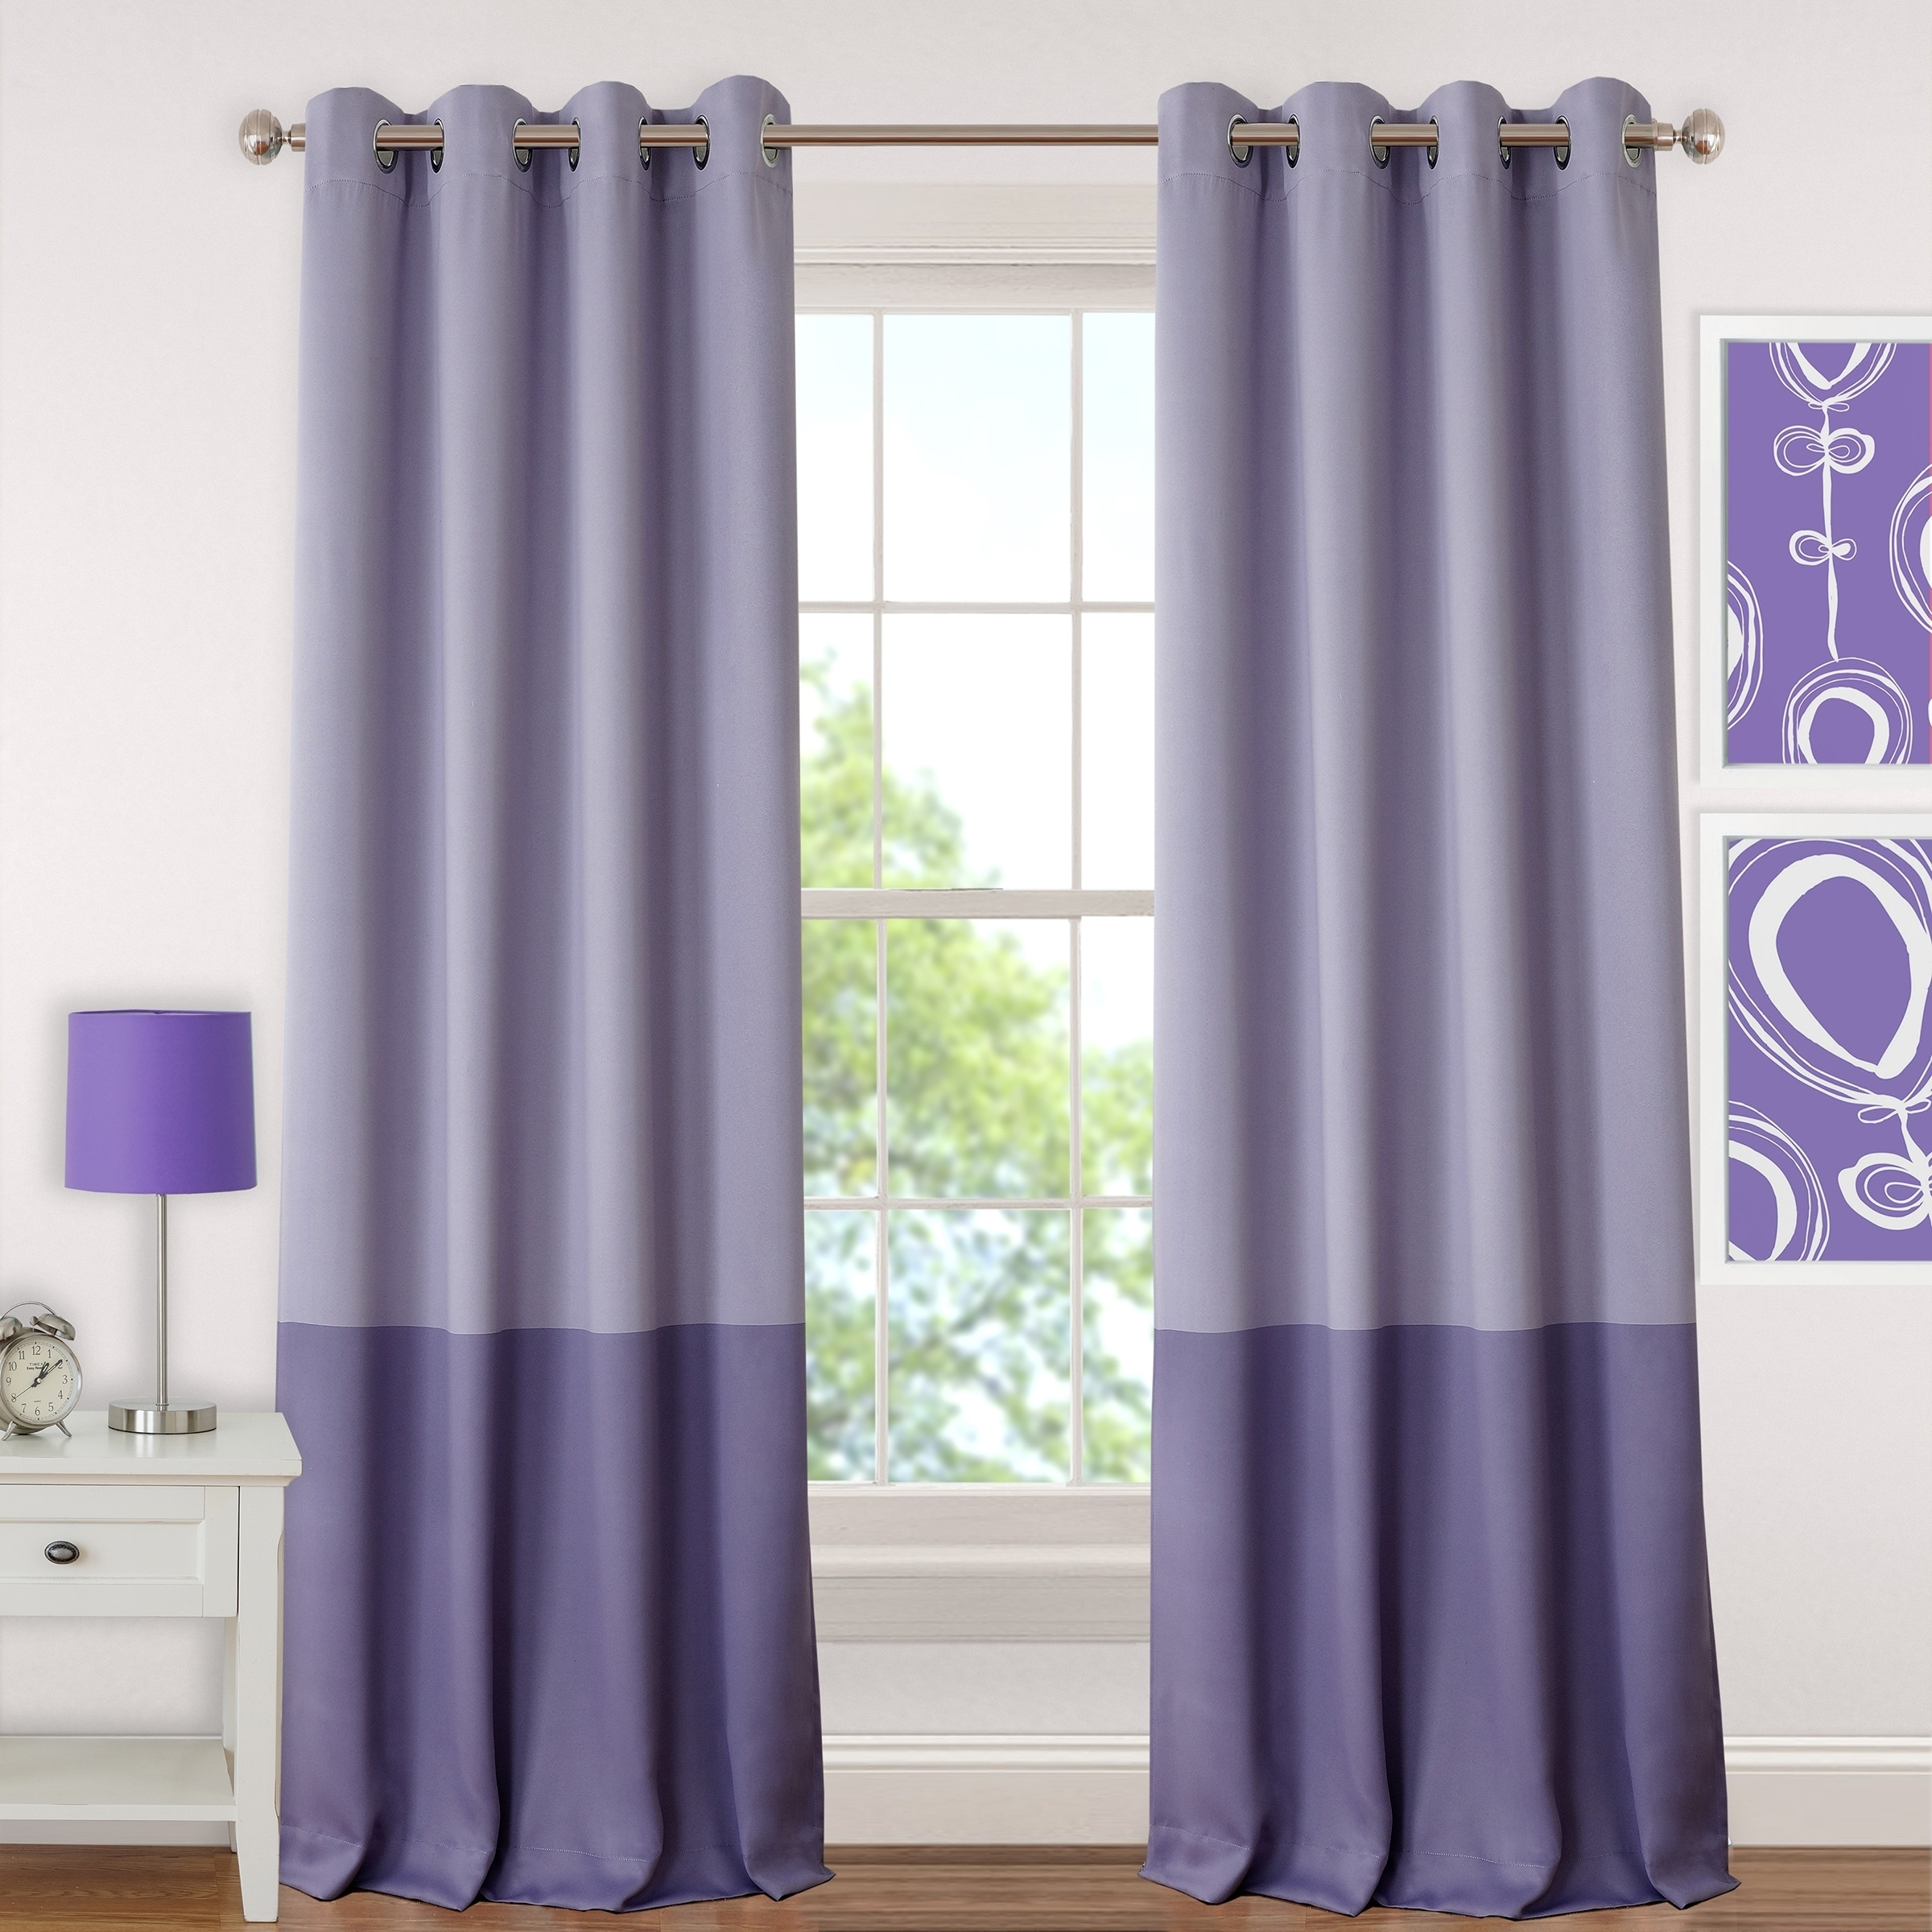 drapes dots or ip thermal eclipse walmart curtains purple girls curtain com blackout bedroom panel